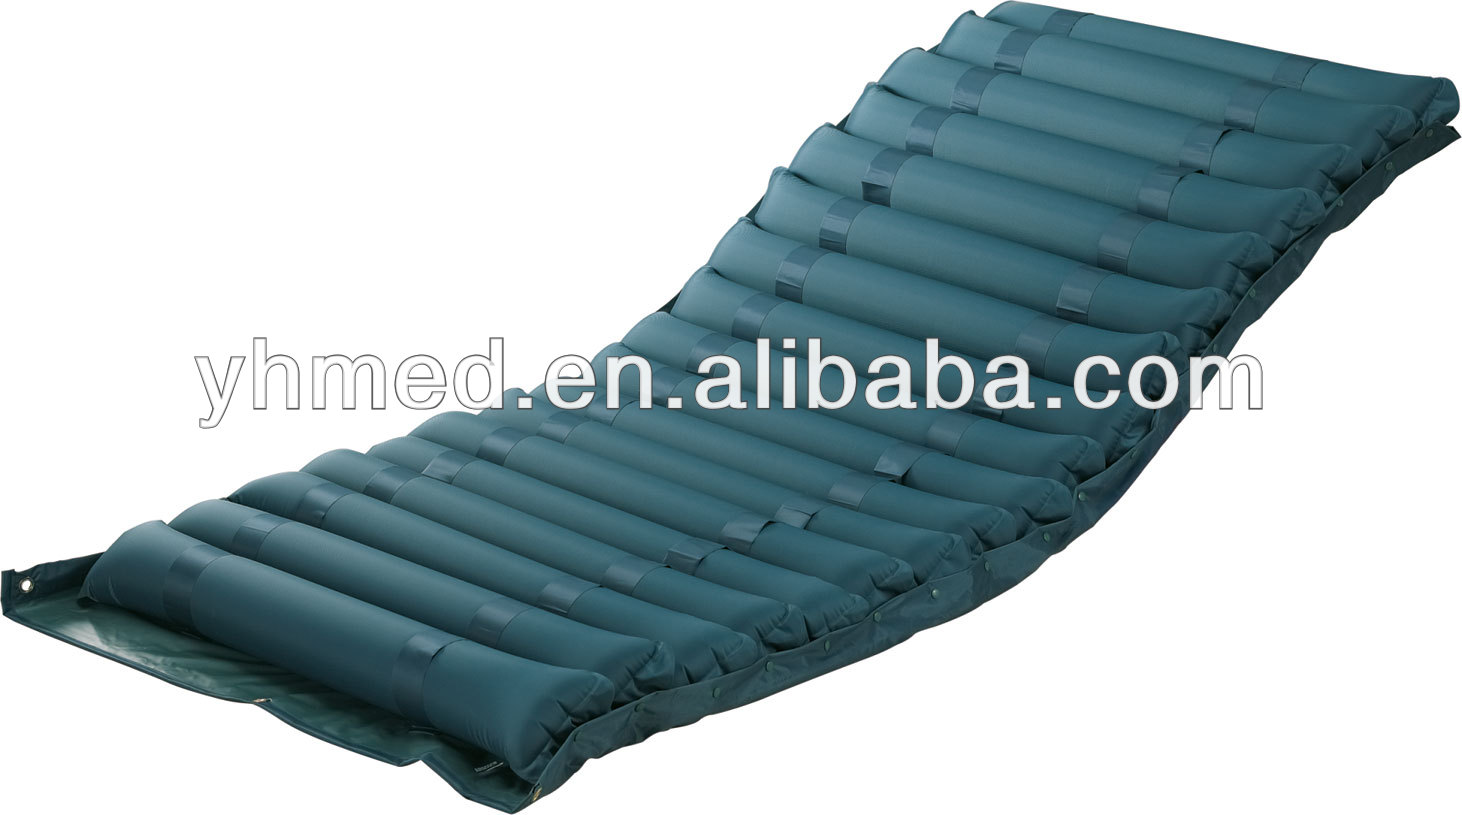 QDC-501 Alternating Pressure Mattress with Pump